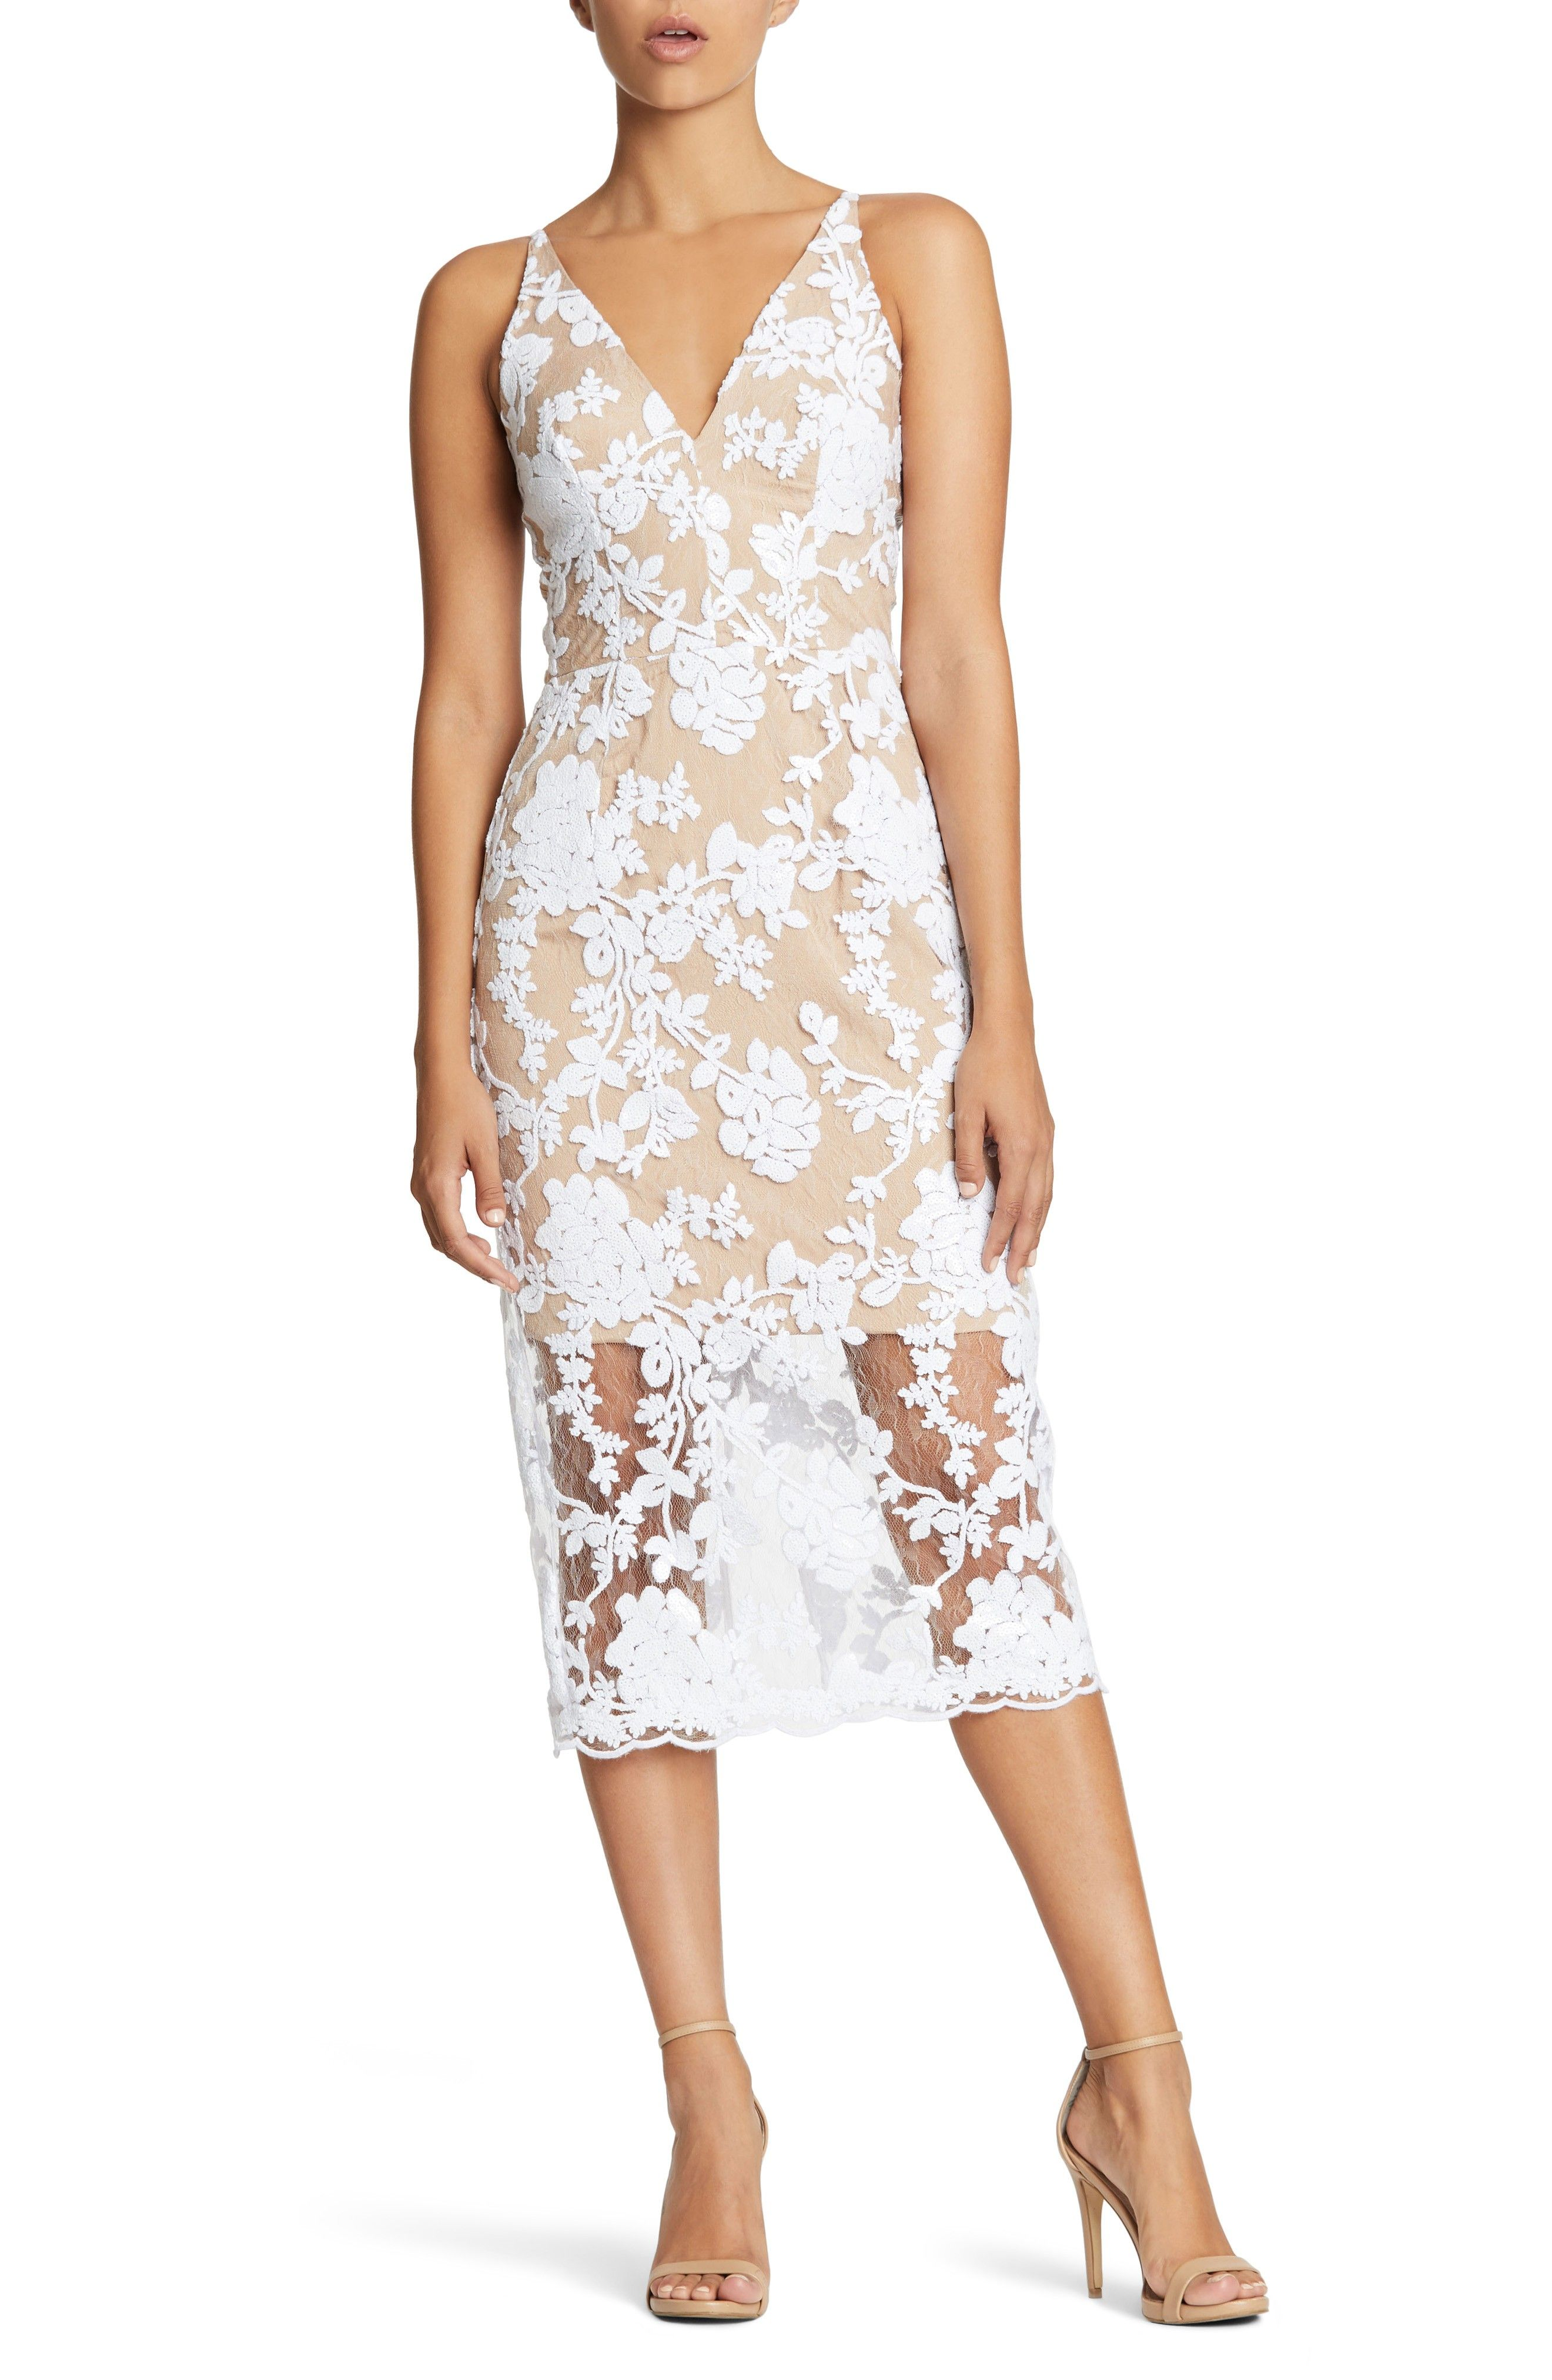 11 Best White Lace Dresses from Nordstrom   White lace dresses ...